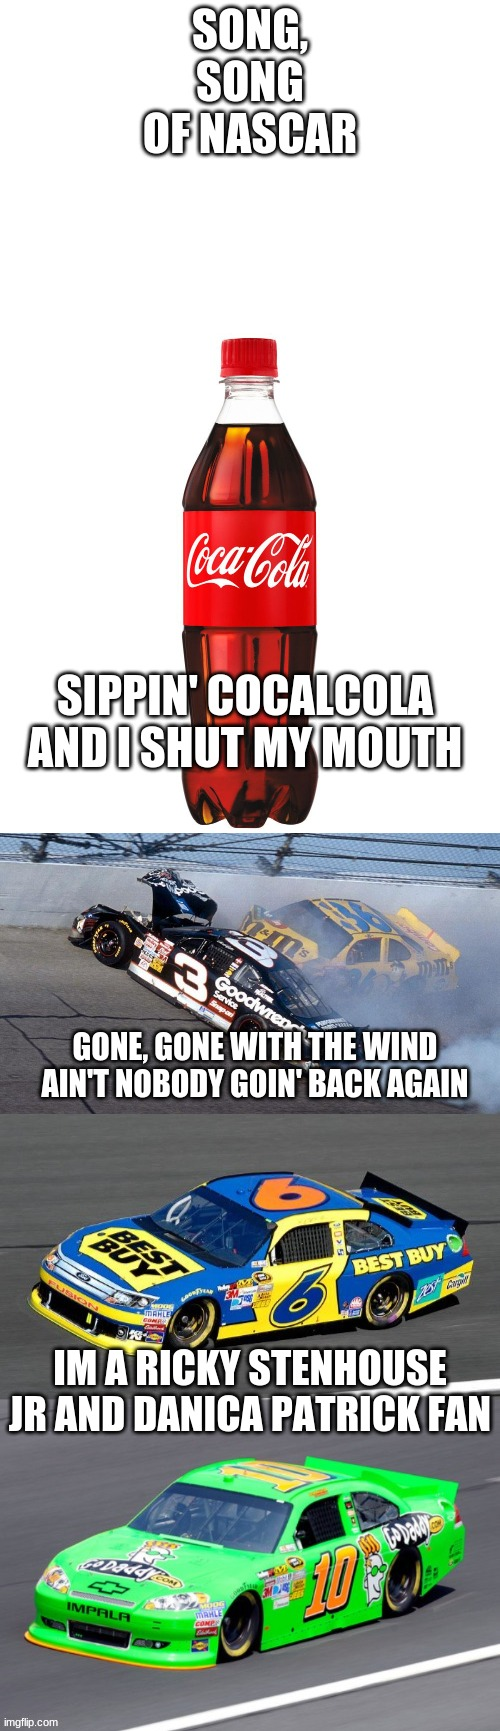 song of NASCAR alabama band song of the south parody |  SONG, SONG OF NASCAR; SIPPIN' COCALCOLA AND I SHUT MY MOUTH; GONE, GONE WITH THE WIND AIN'T NOBODY GOIN' BACK AGAIN; IM A RICKY STENHOUSE JR AND DANICA PATRICK FAN | image tagged in nascar,alabama band song of the south,ain't nobody going back to that 2001 daytona 500 again | made w/ Imgflip meme maker